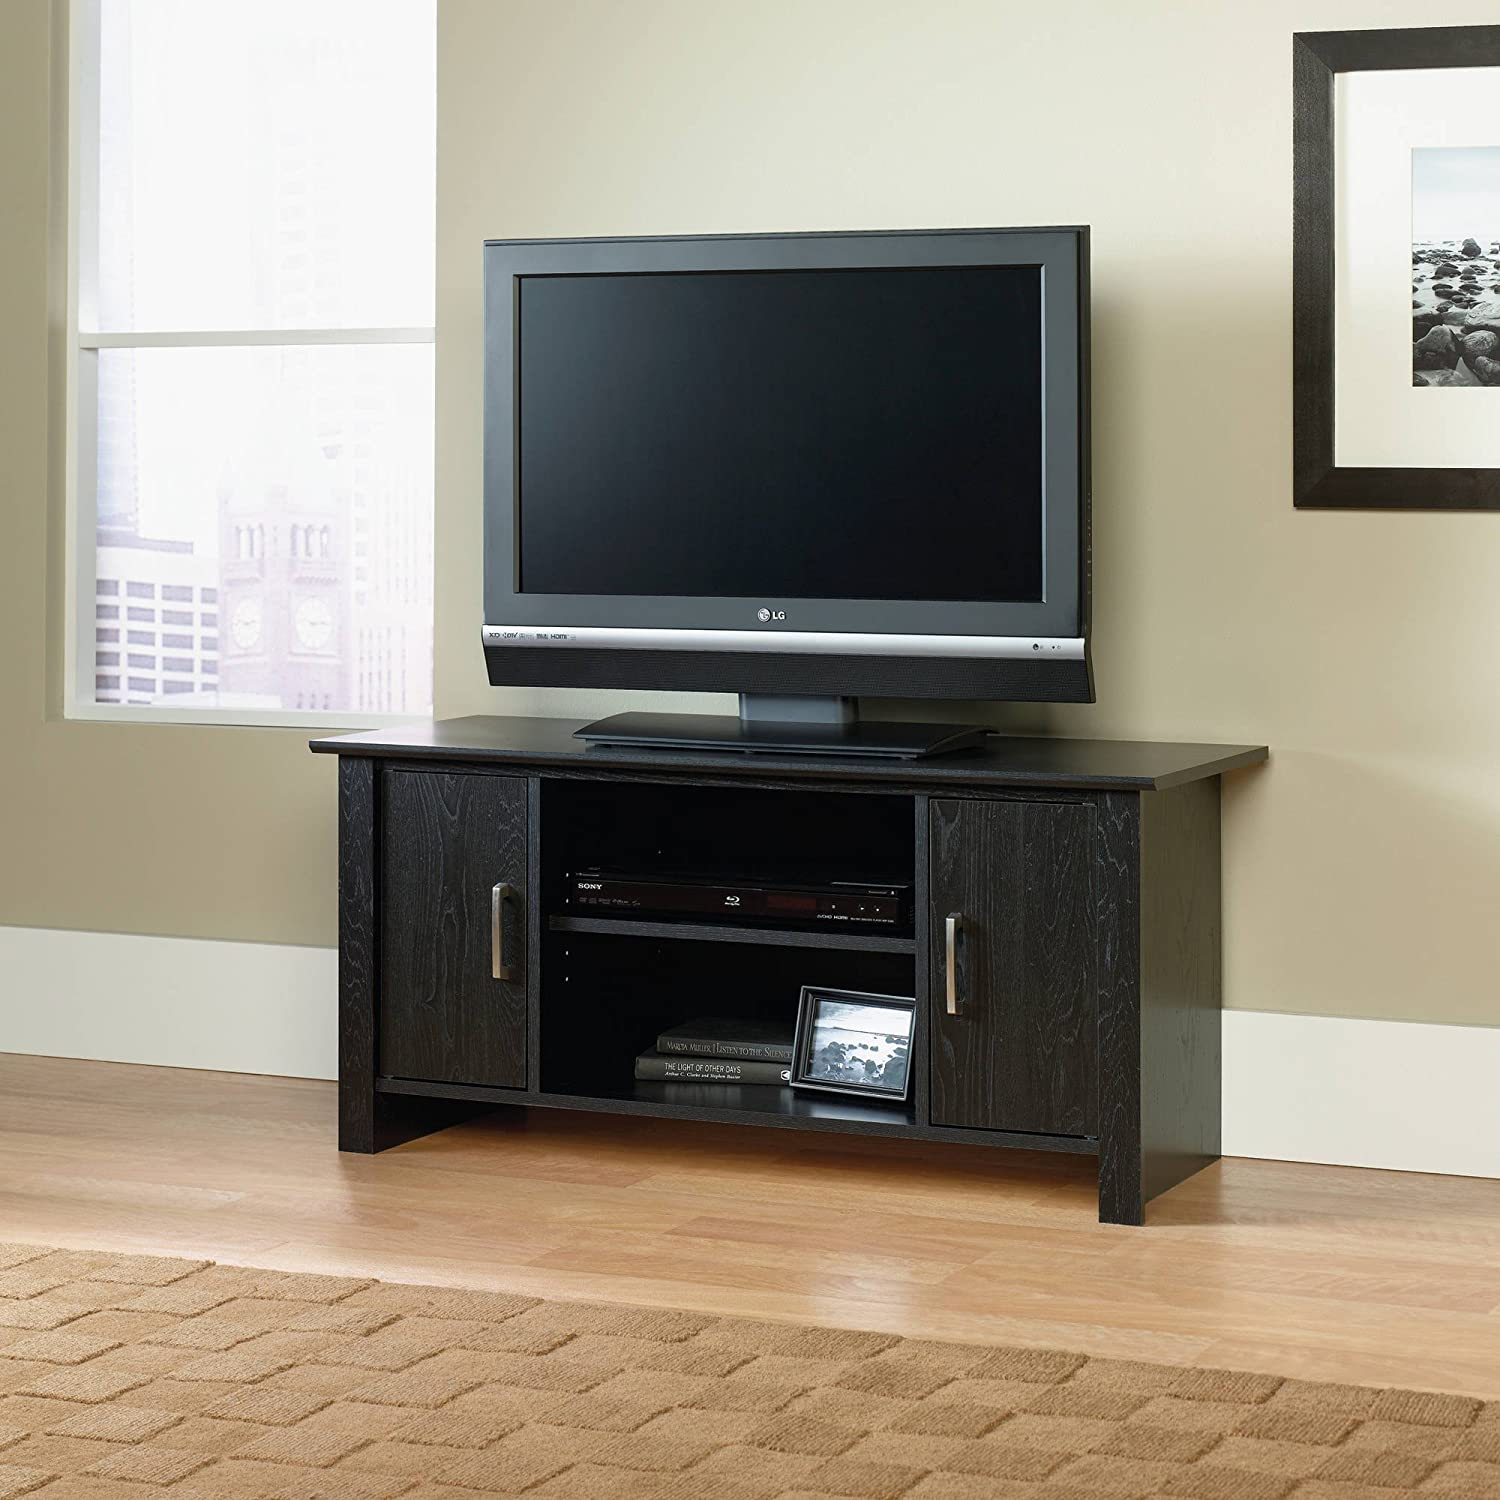 amazon com mainstays 411660 wood tv stand for flat screen tvs up to rh amazon com